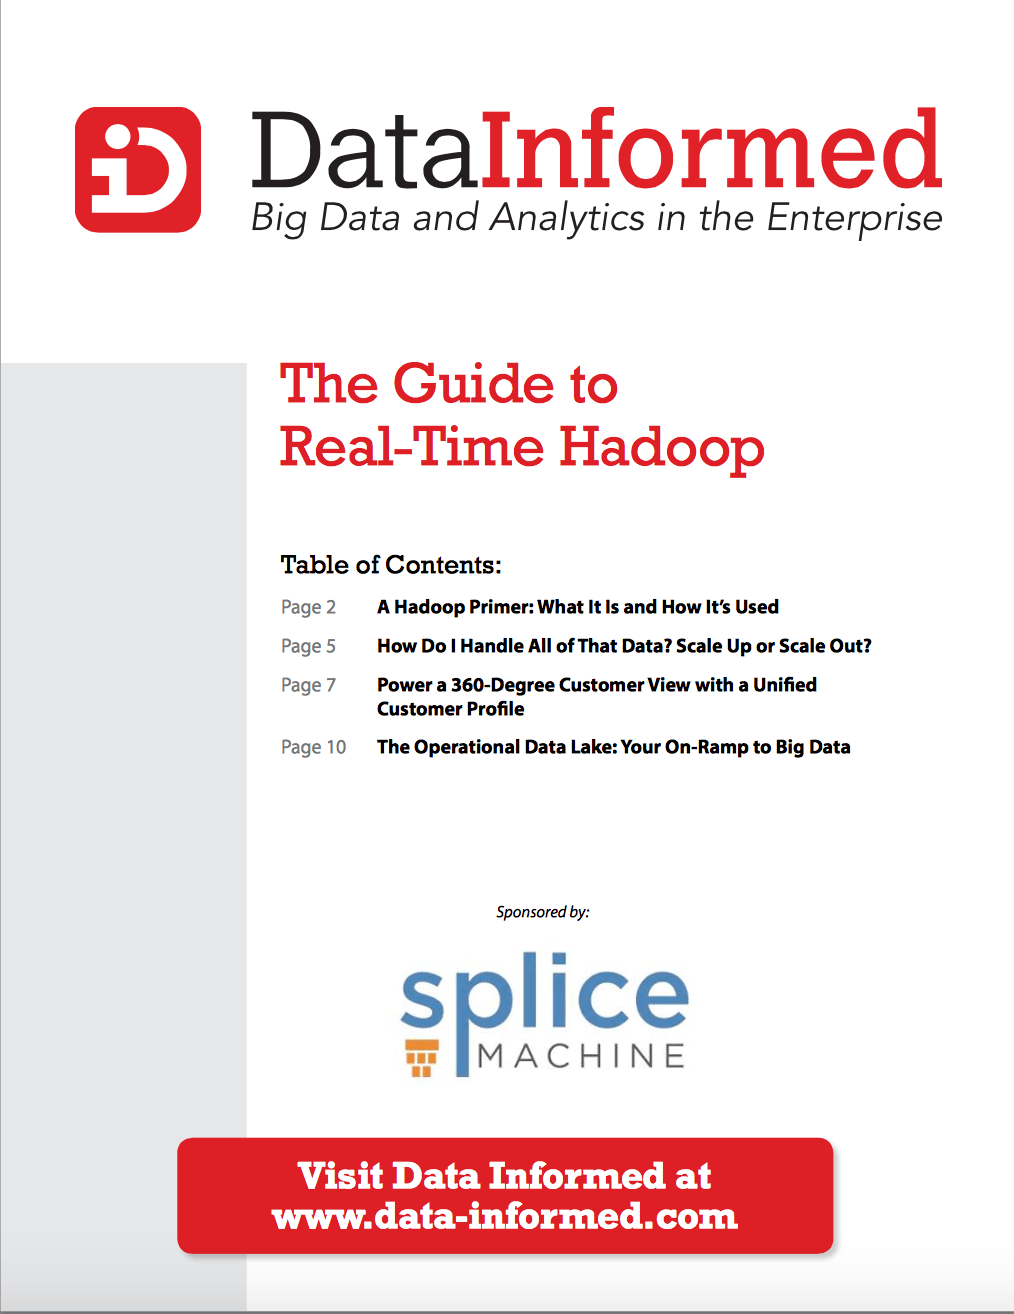 Data Informed eBook_The Guide to Real Time Hadoop